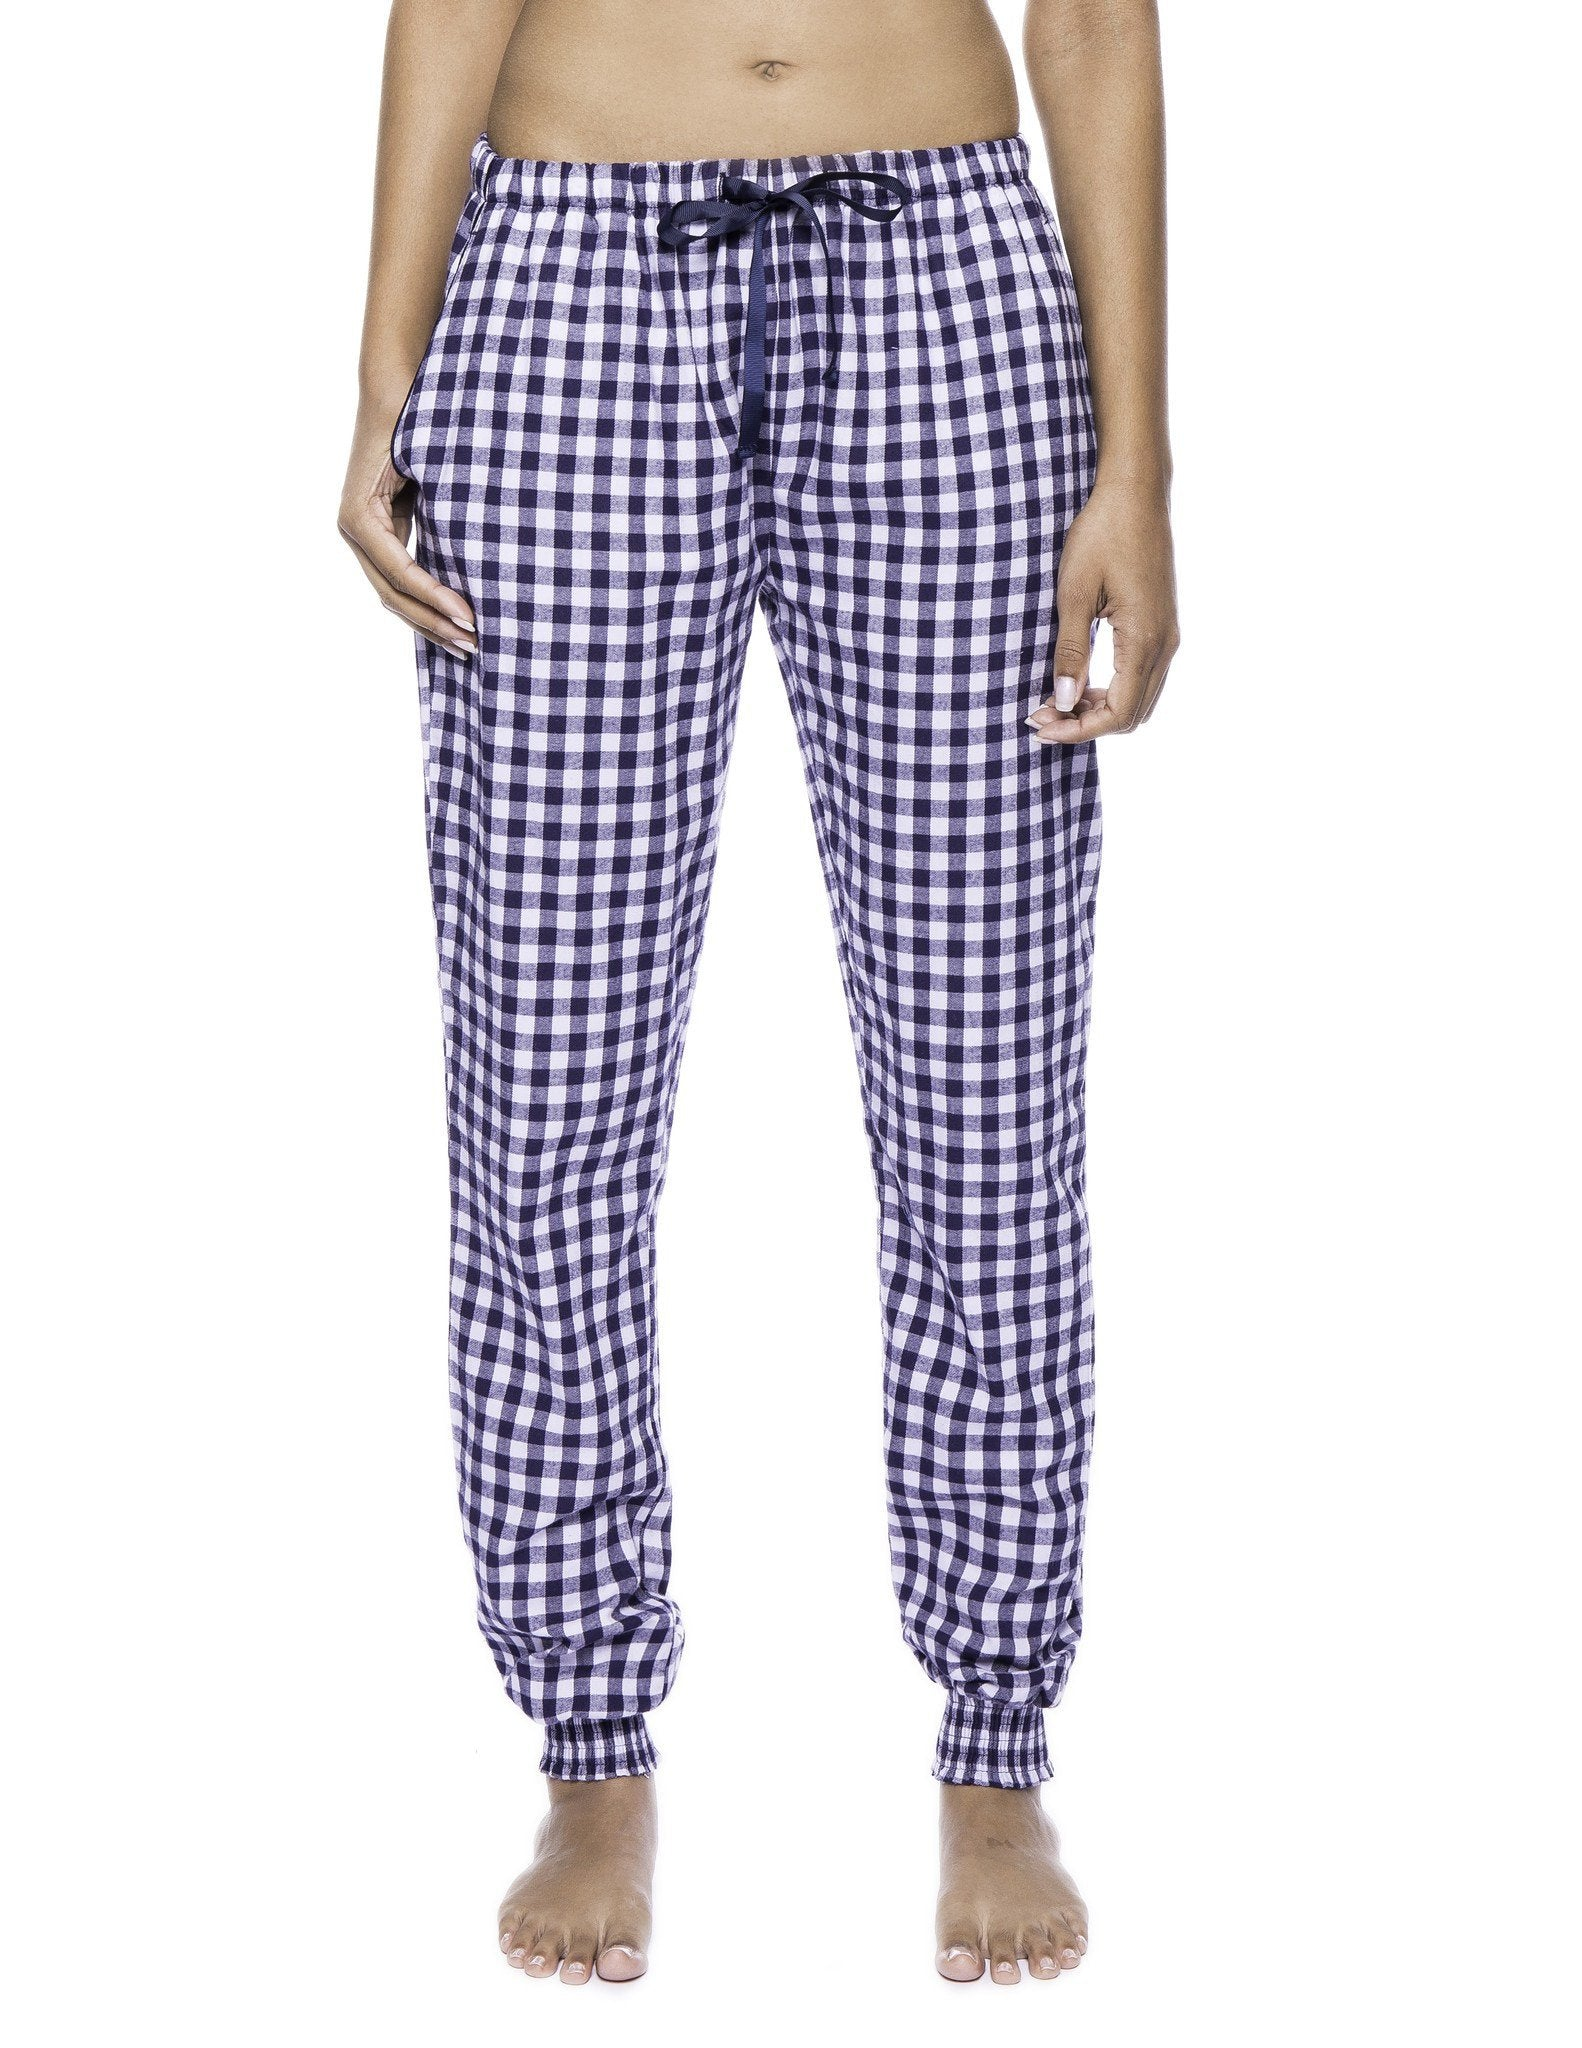 Women's Premium Flannel Jogger Lounge Pants - Gingham Blue/Heather